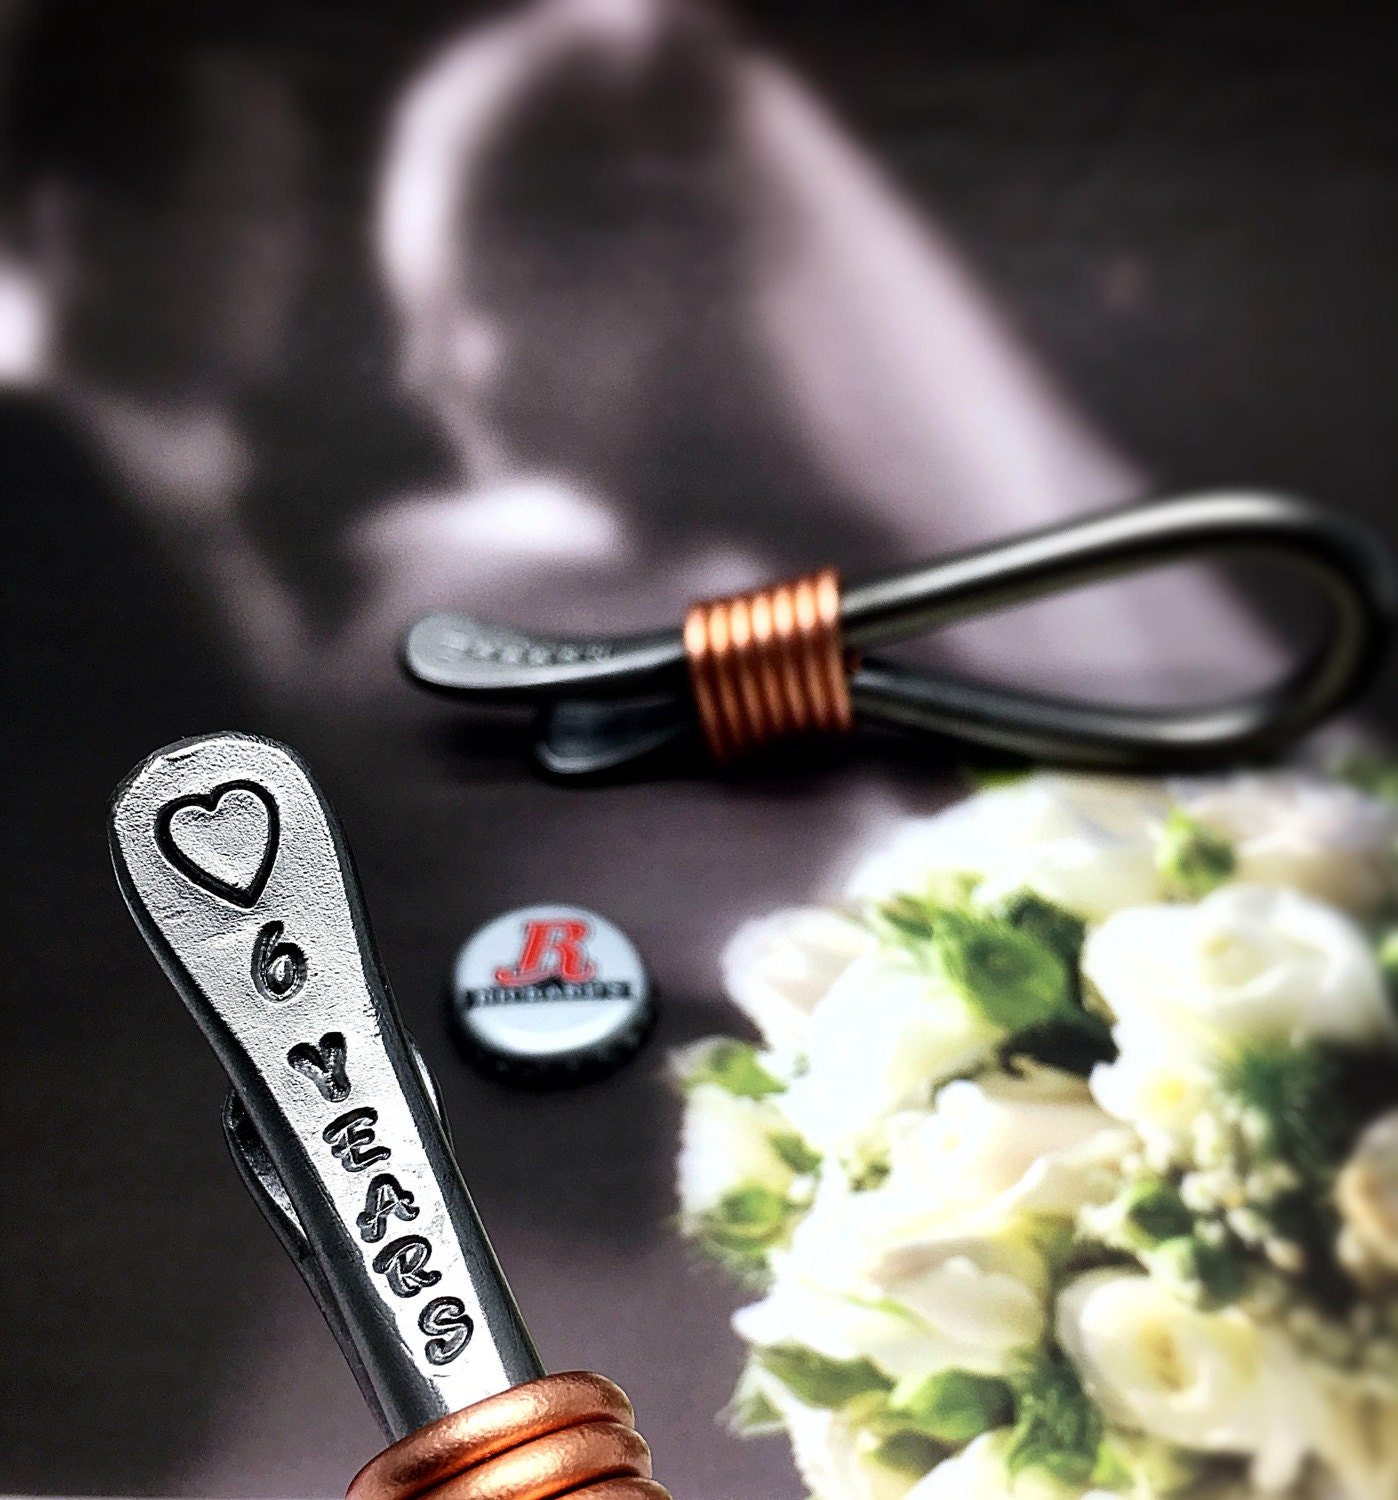 6th Wedding Anniversary Gift Ideas For Husband: 6th Year Iron Wedding Anniversary Gift Bottle Opener For